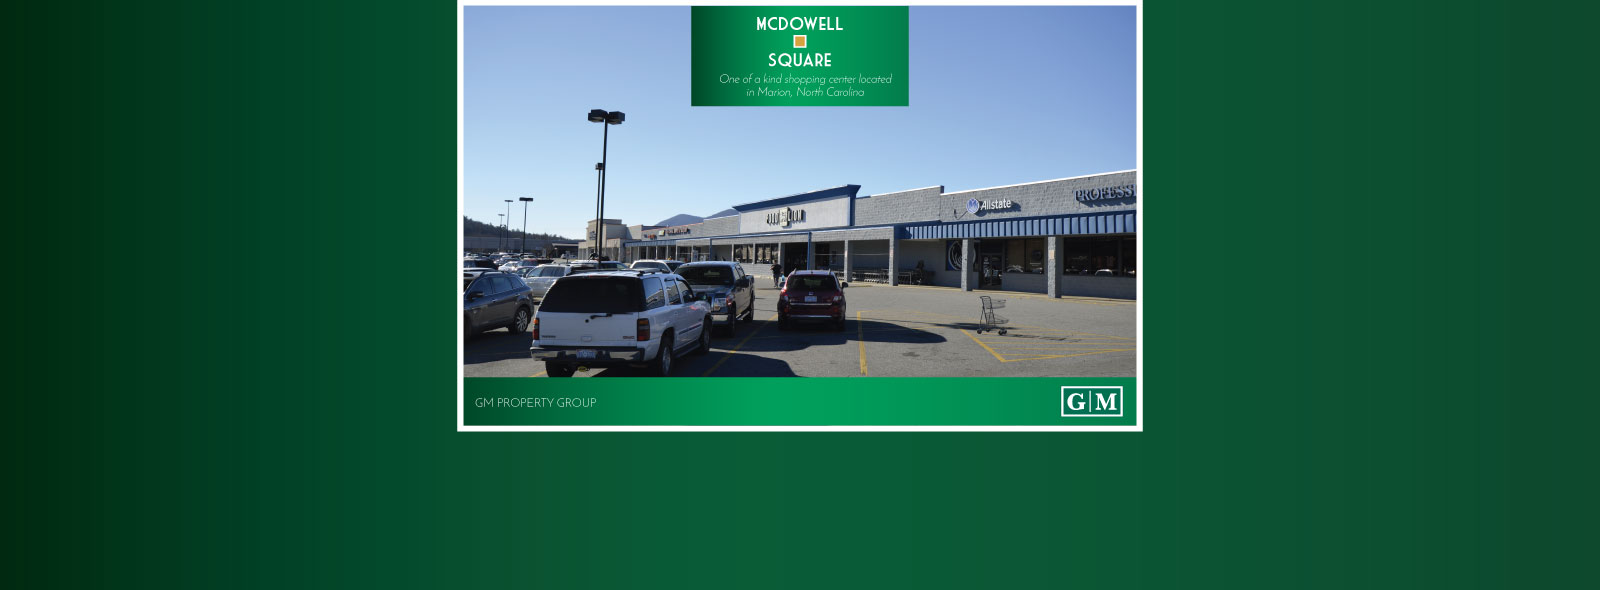 Mcdowell Square Gm Deal Flow